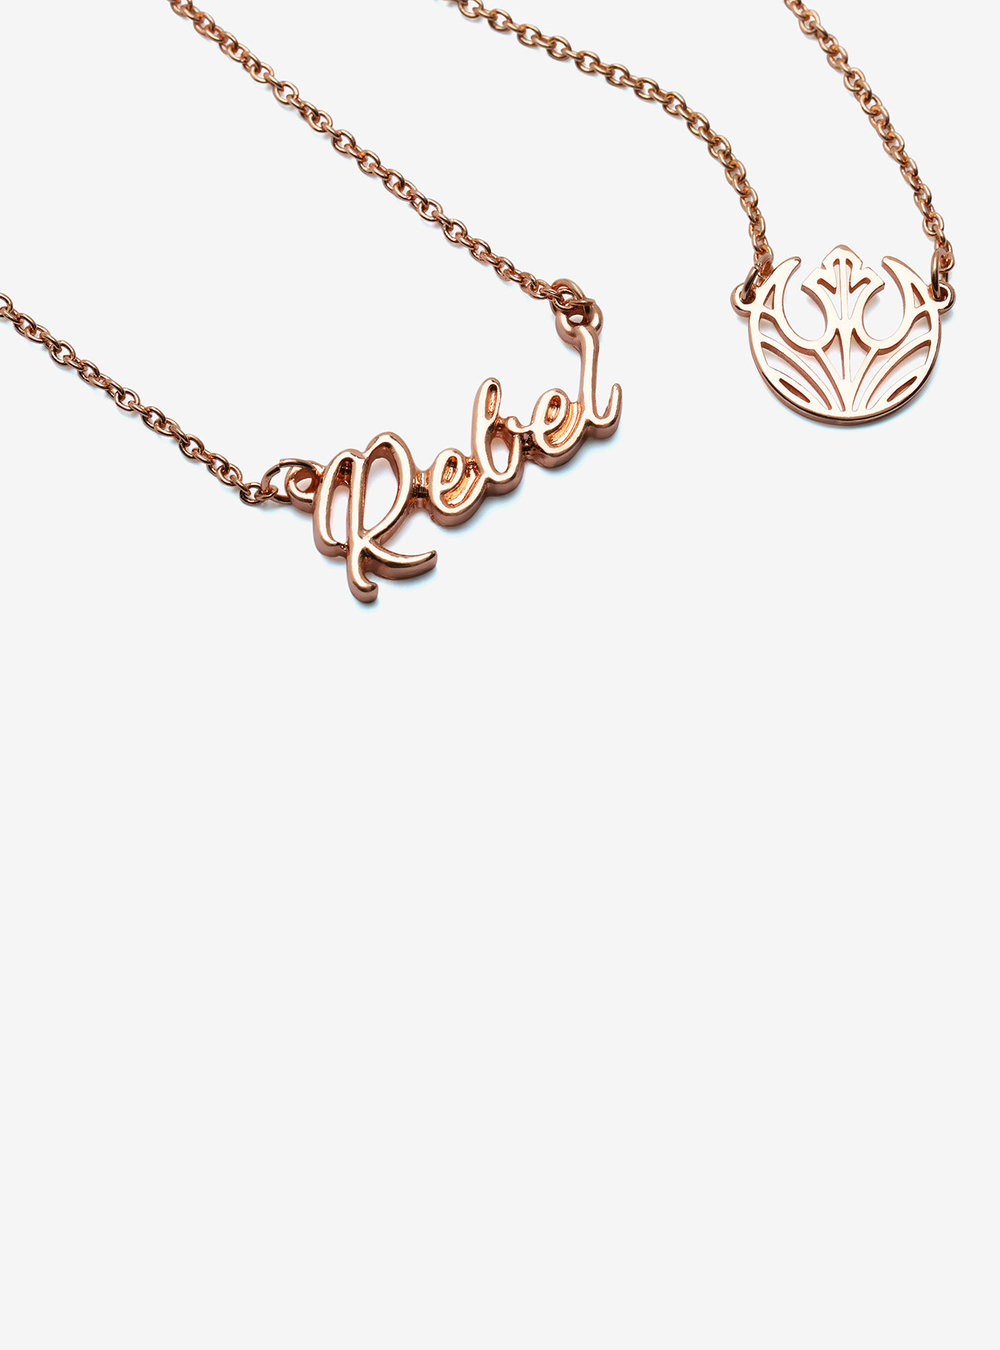 Rebel necklace set.jpg